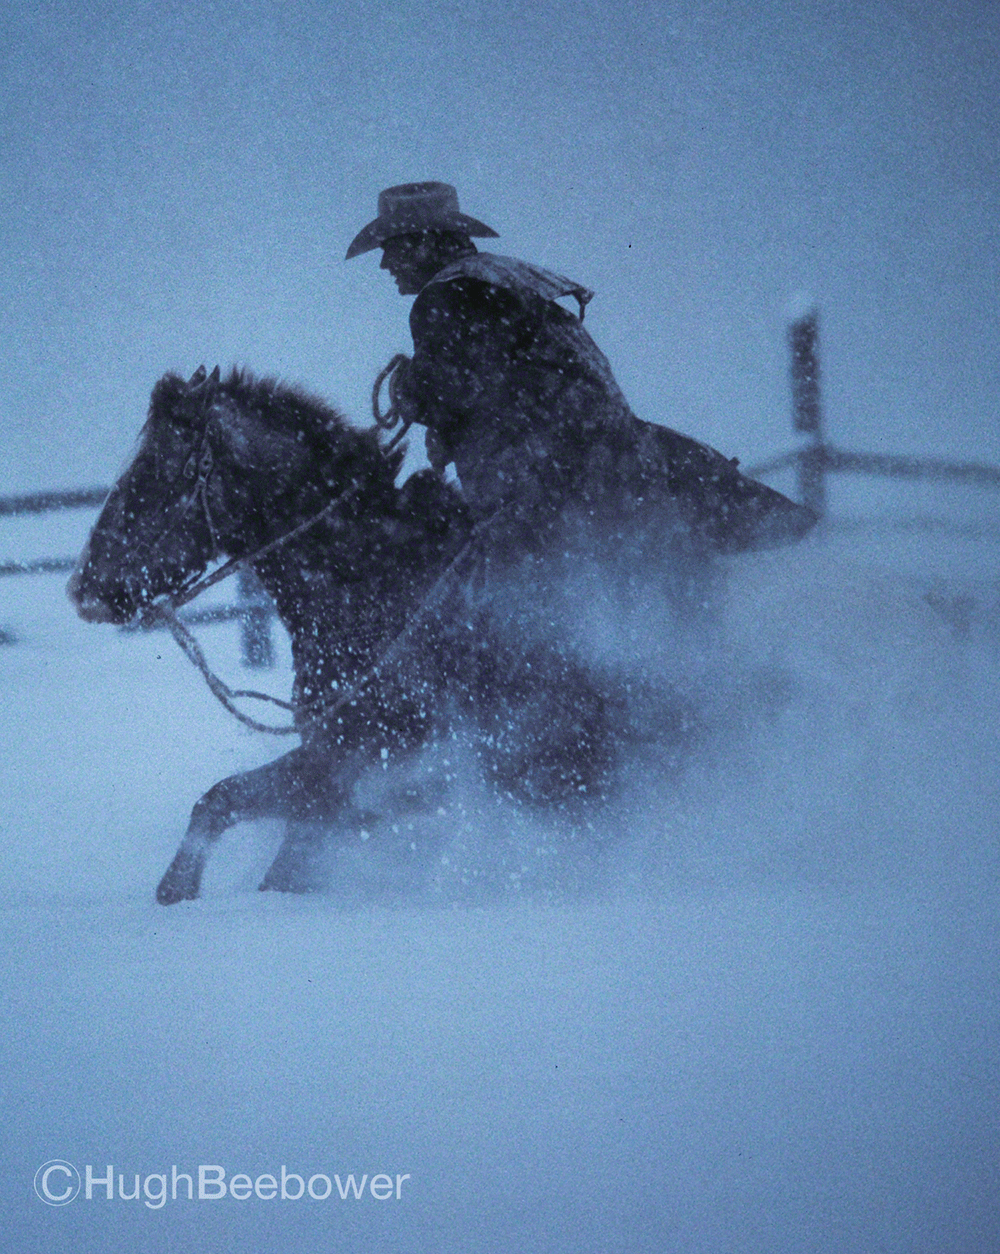 Cowboy and Horse in the Snow | Beebower Productions